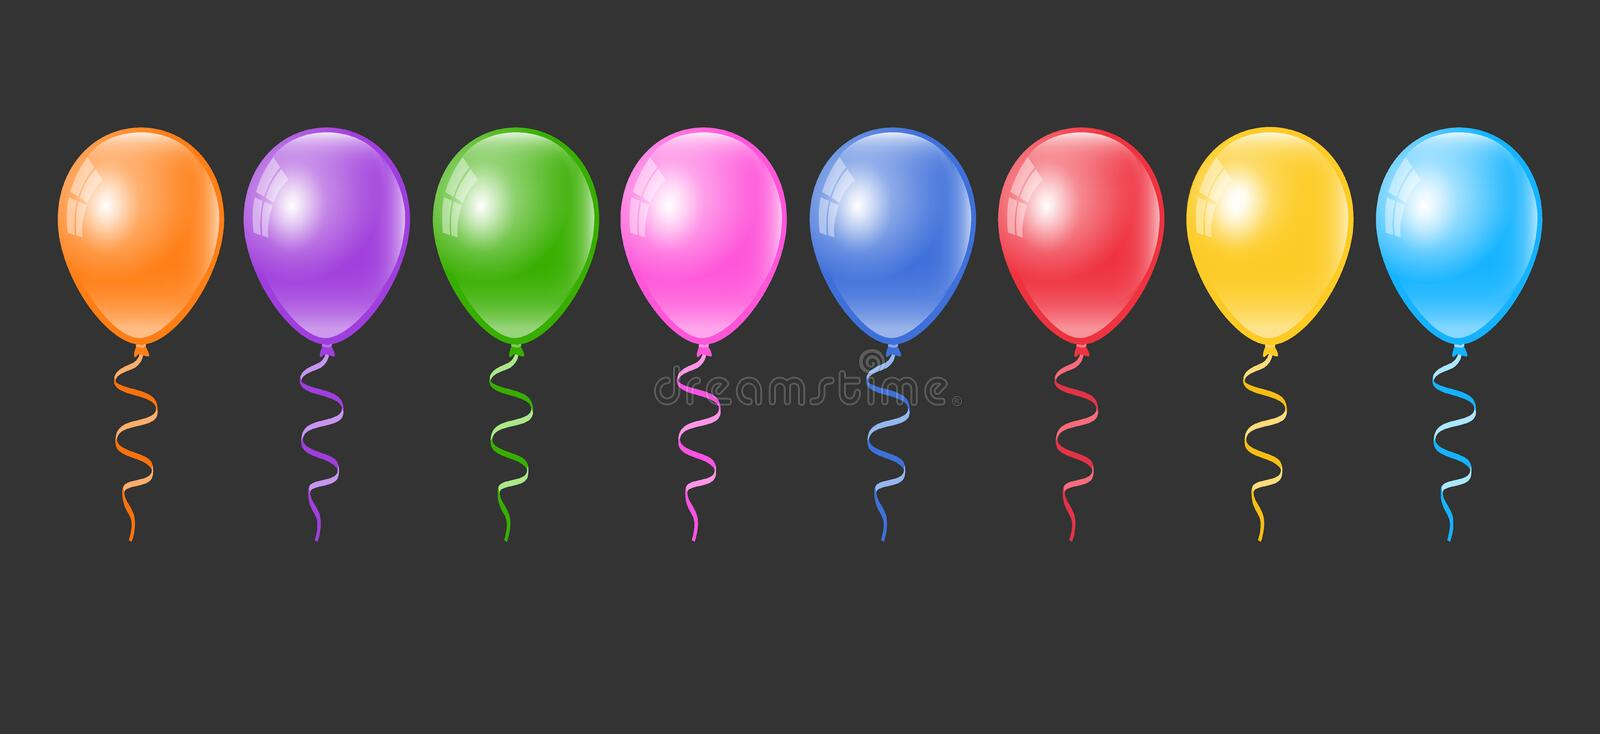 Realistic colorful balloons set. Balloon collection. royalty free illustration